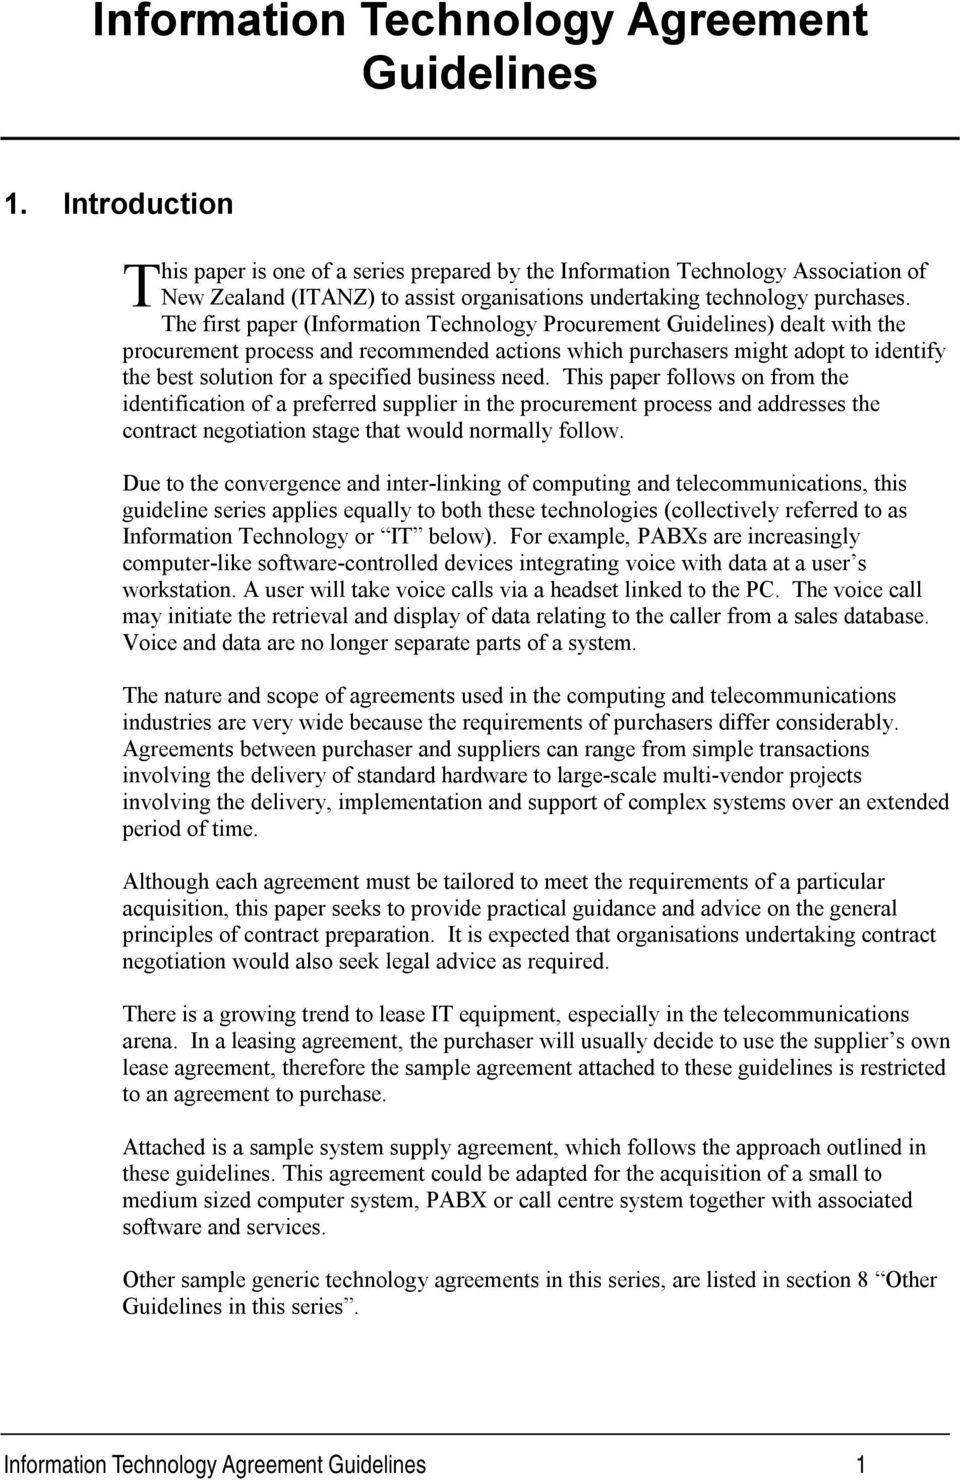 Information Technology Agreement Guidelines Pdf